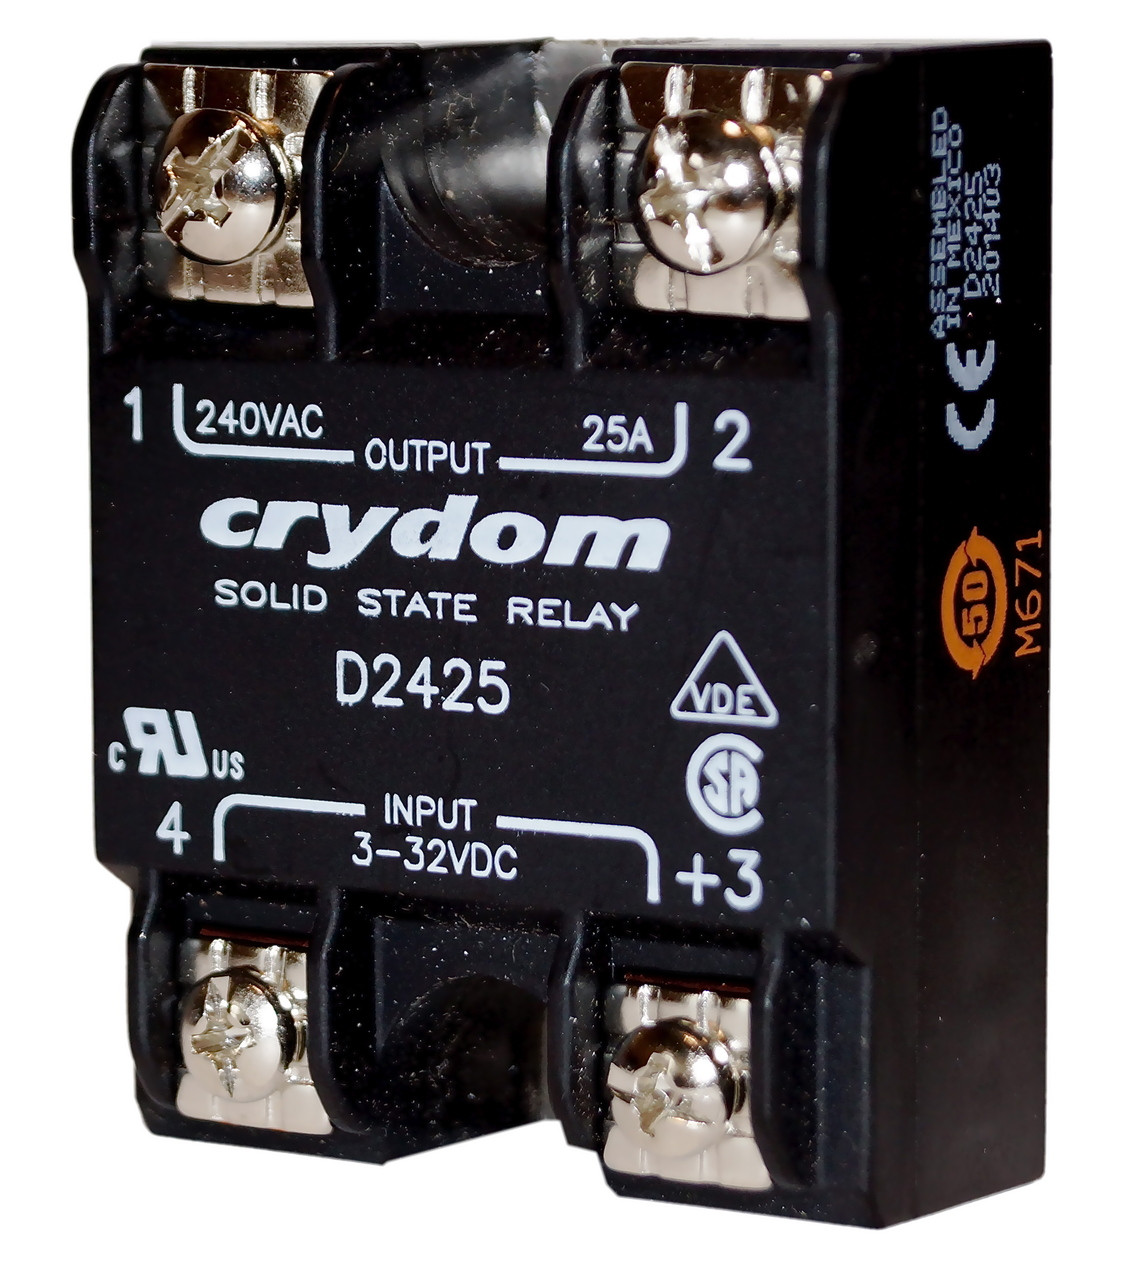 Solid State Relays Relay Crouzet Crydom Surface Mount Larger More Photos